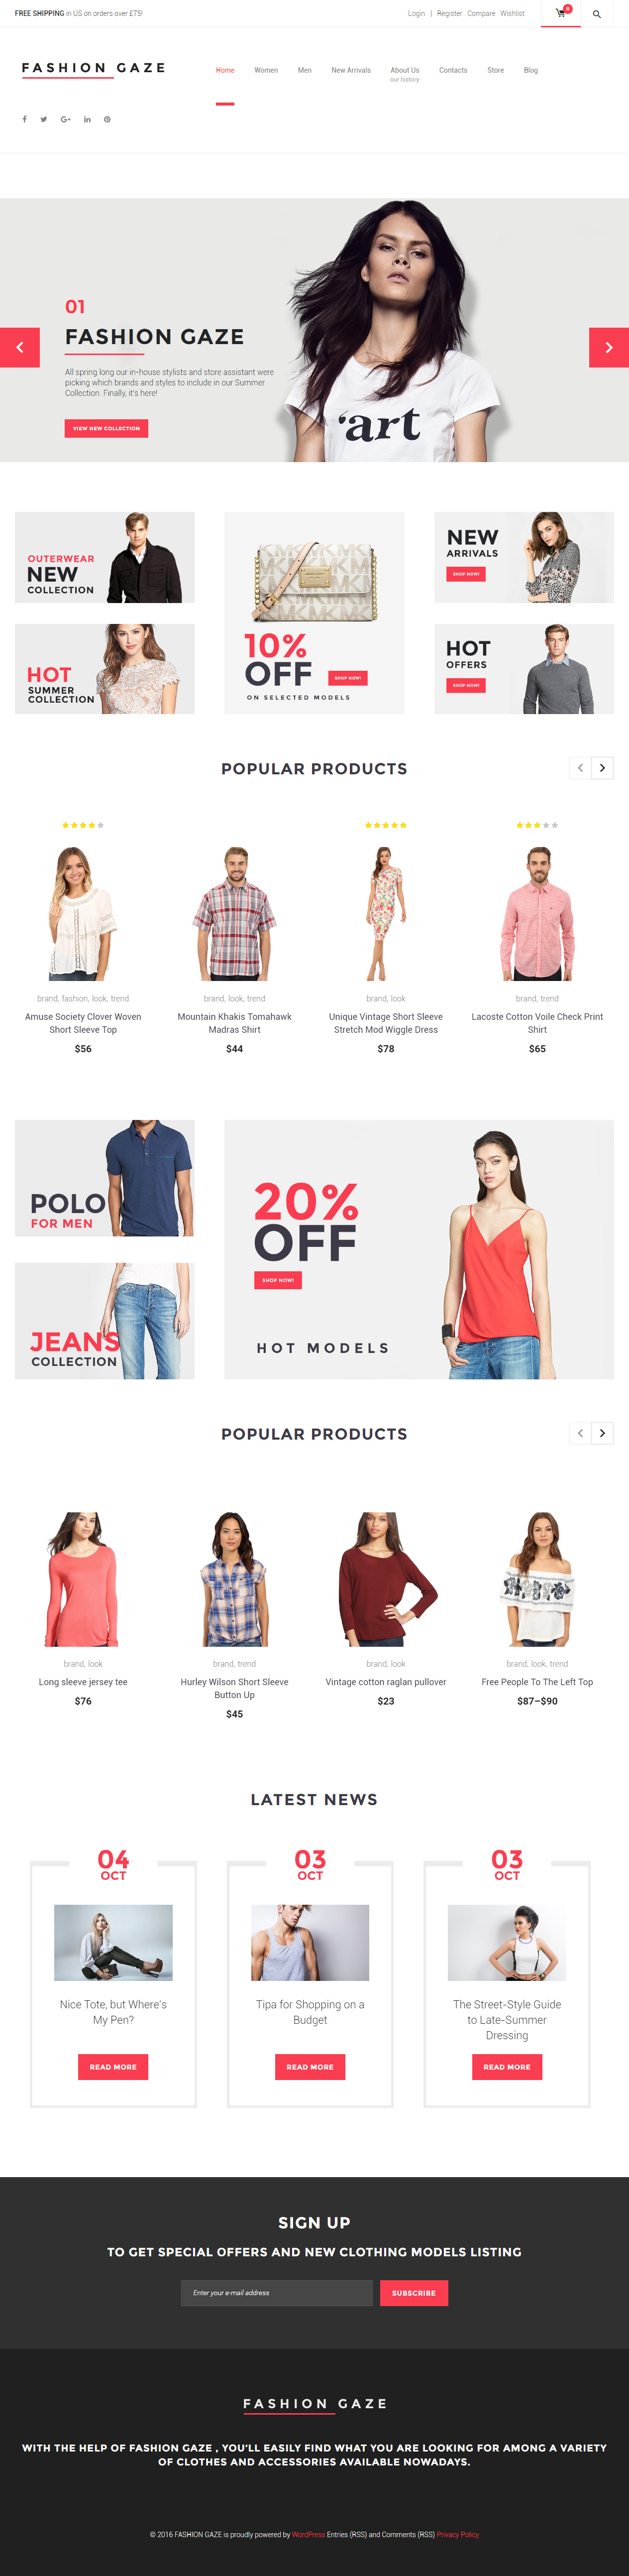 Fashion Gaze Premium Responsive Woocommerce Wordpress Theme